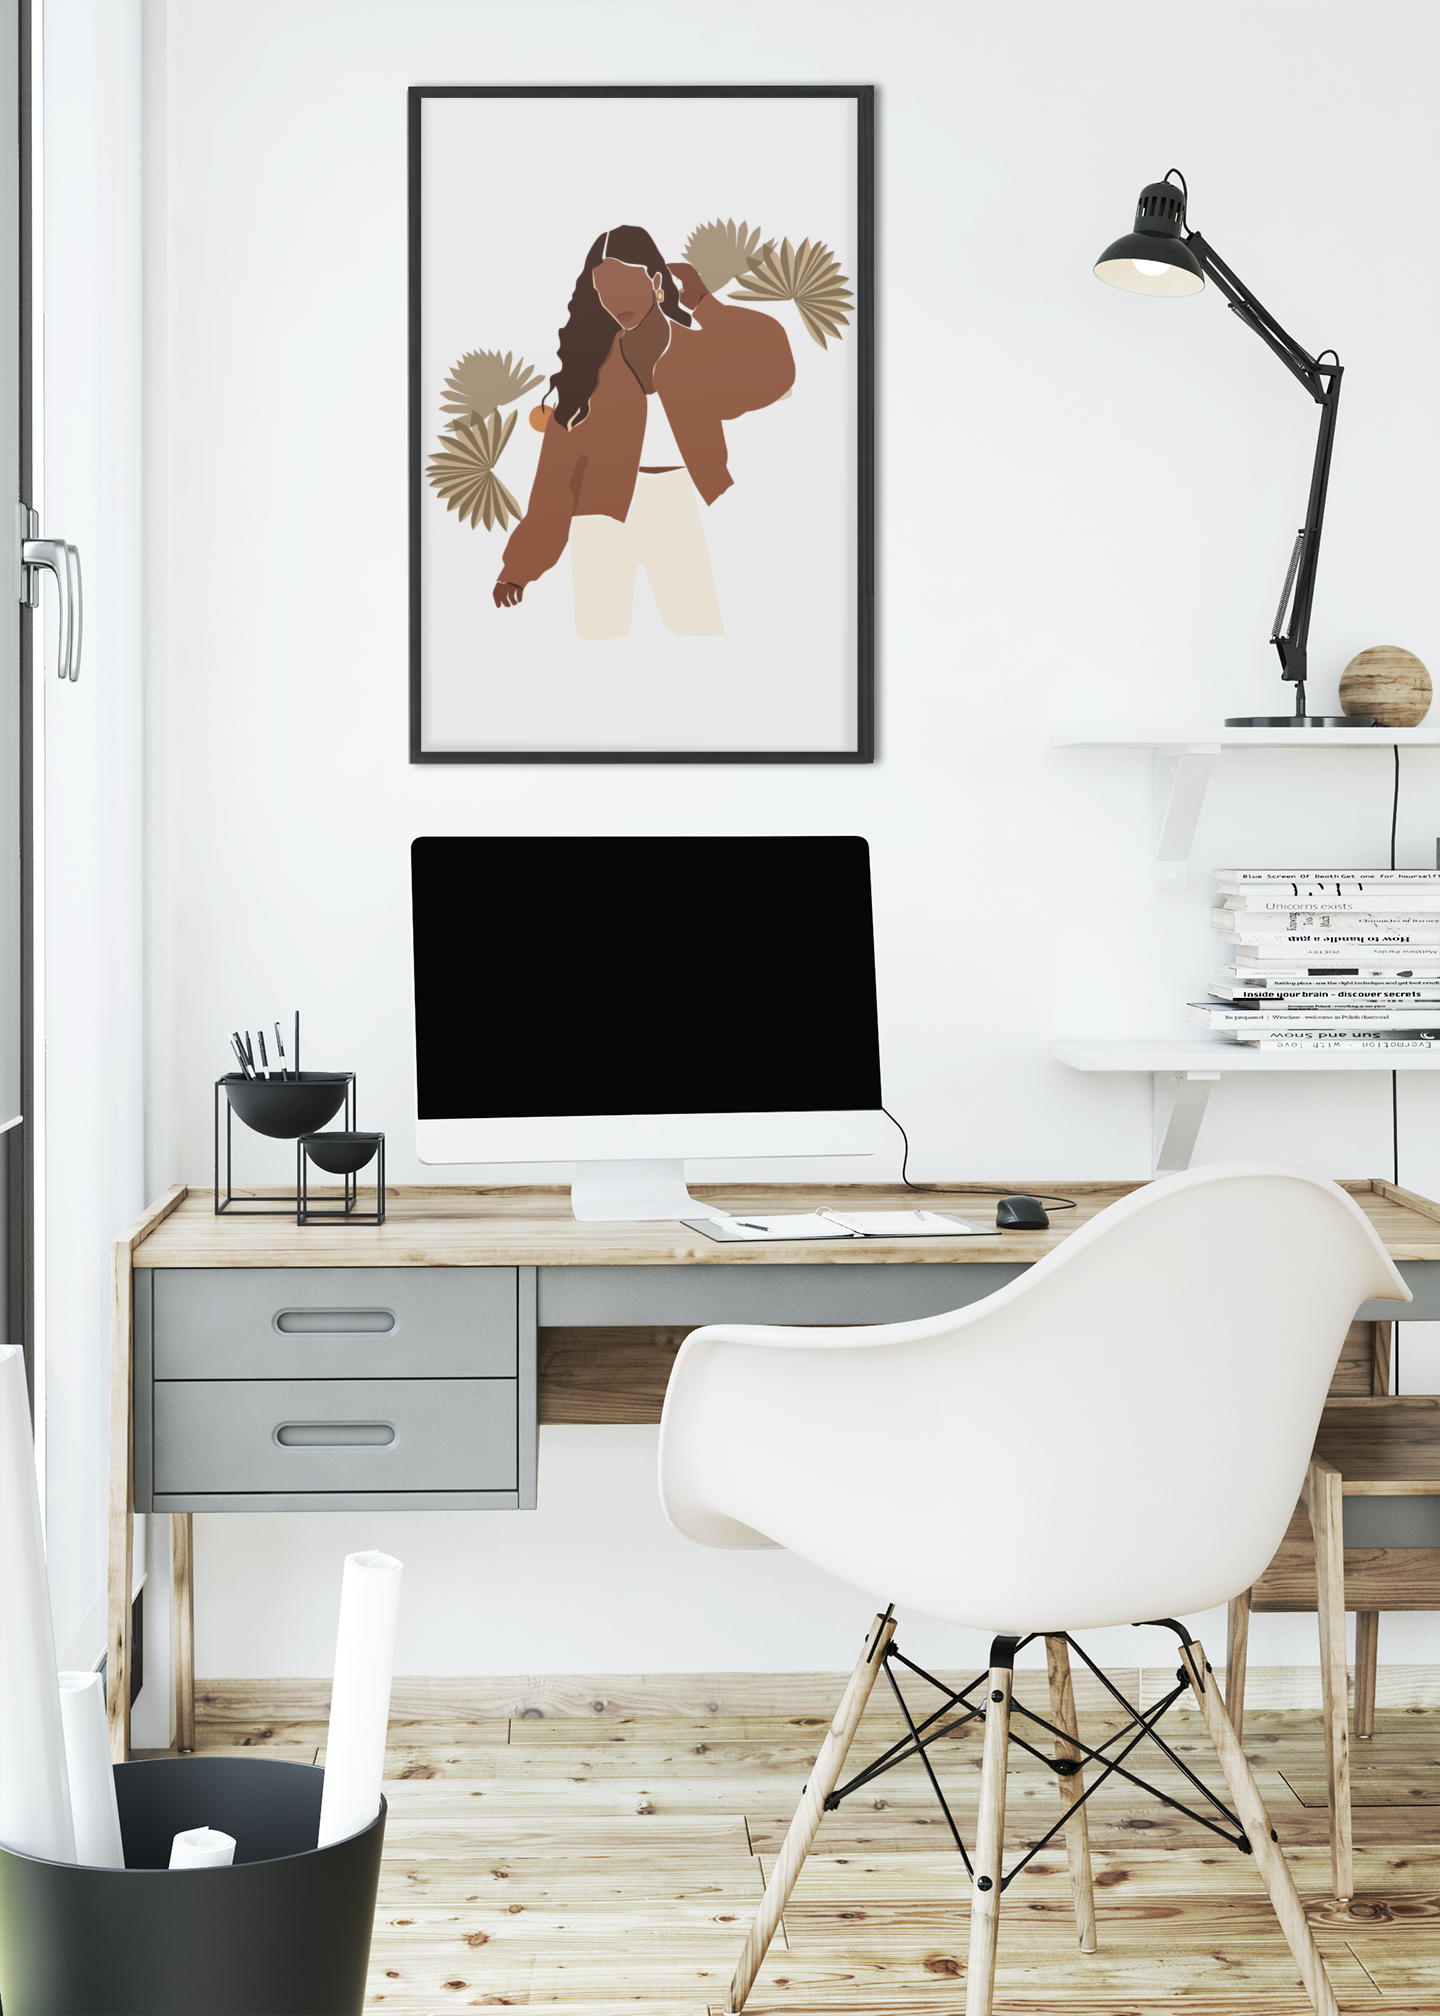 mockup-of-an-art-print-frame-hanged-by-a